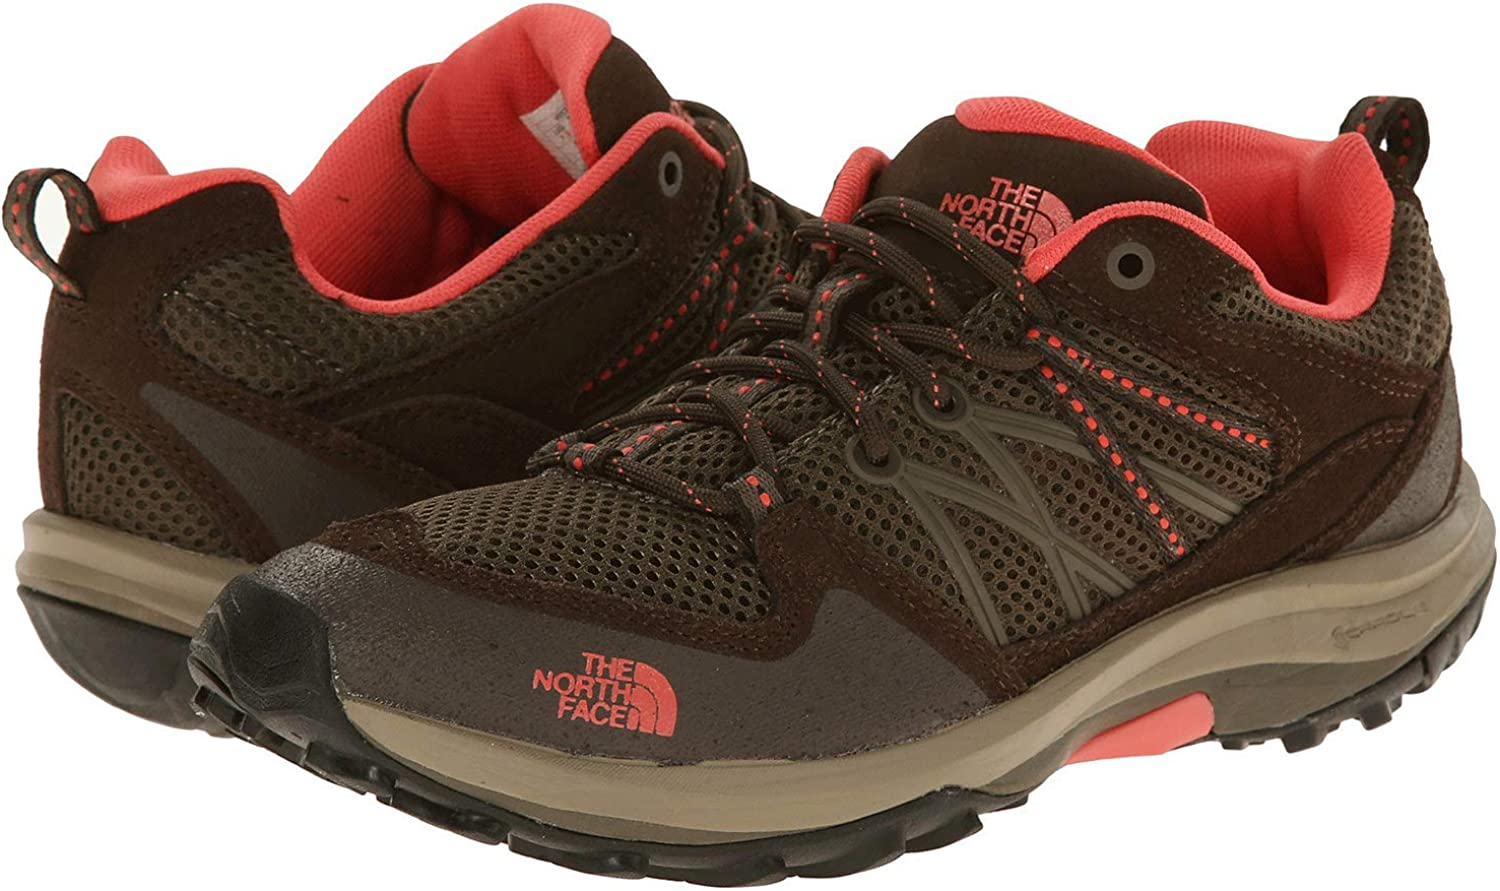 The North Face Women s Storm Fastpack Hiking Shoe